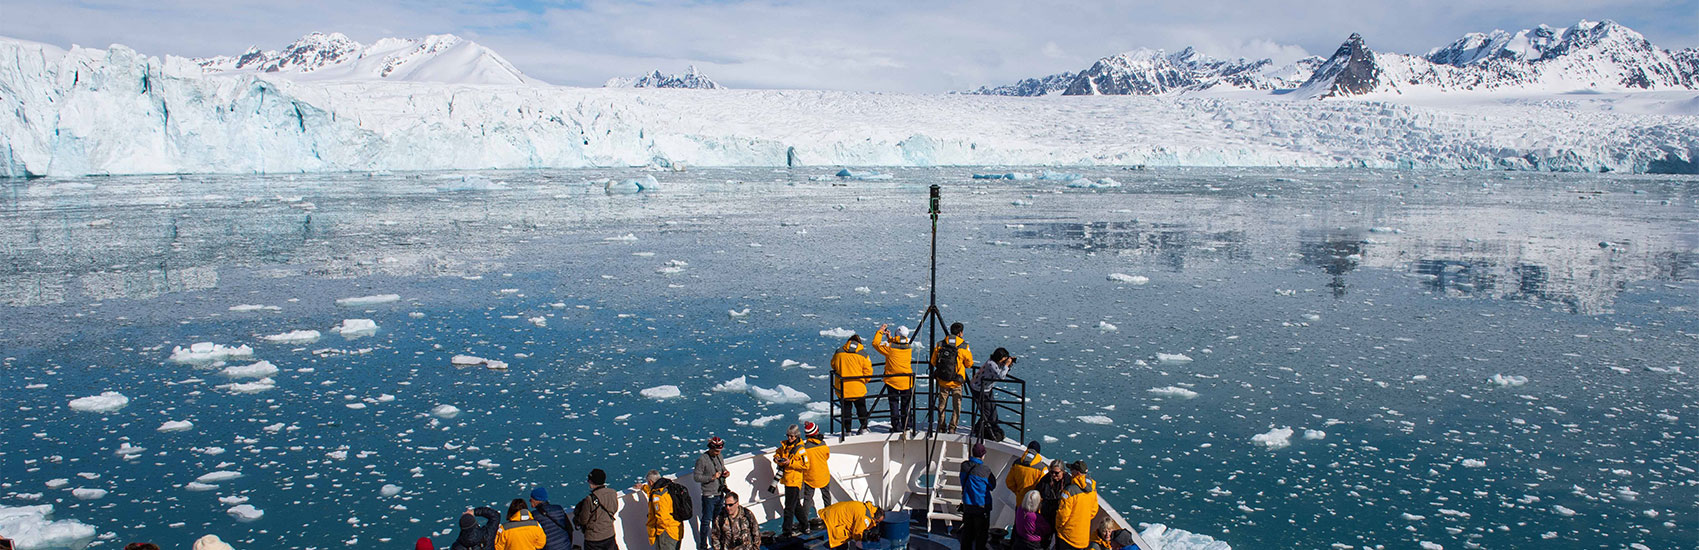 Visit the Arctic in 2020 with Quark Expeditions